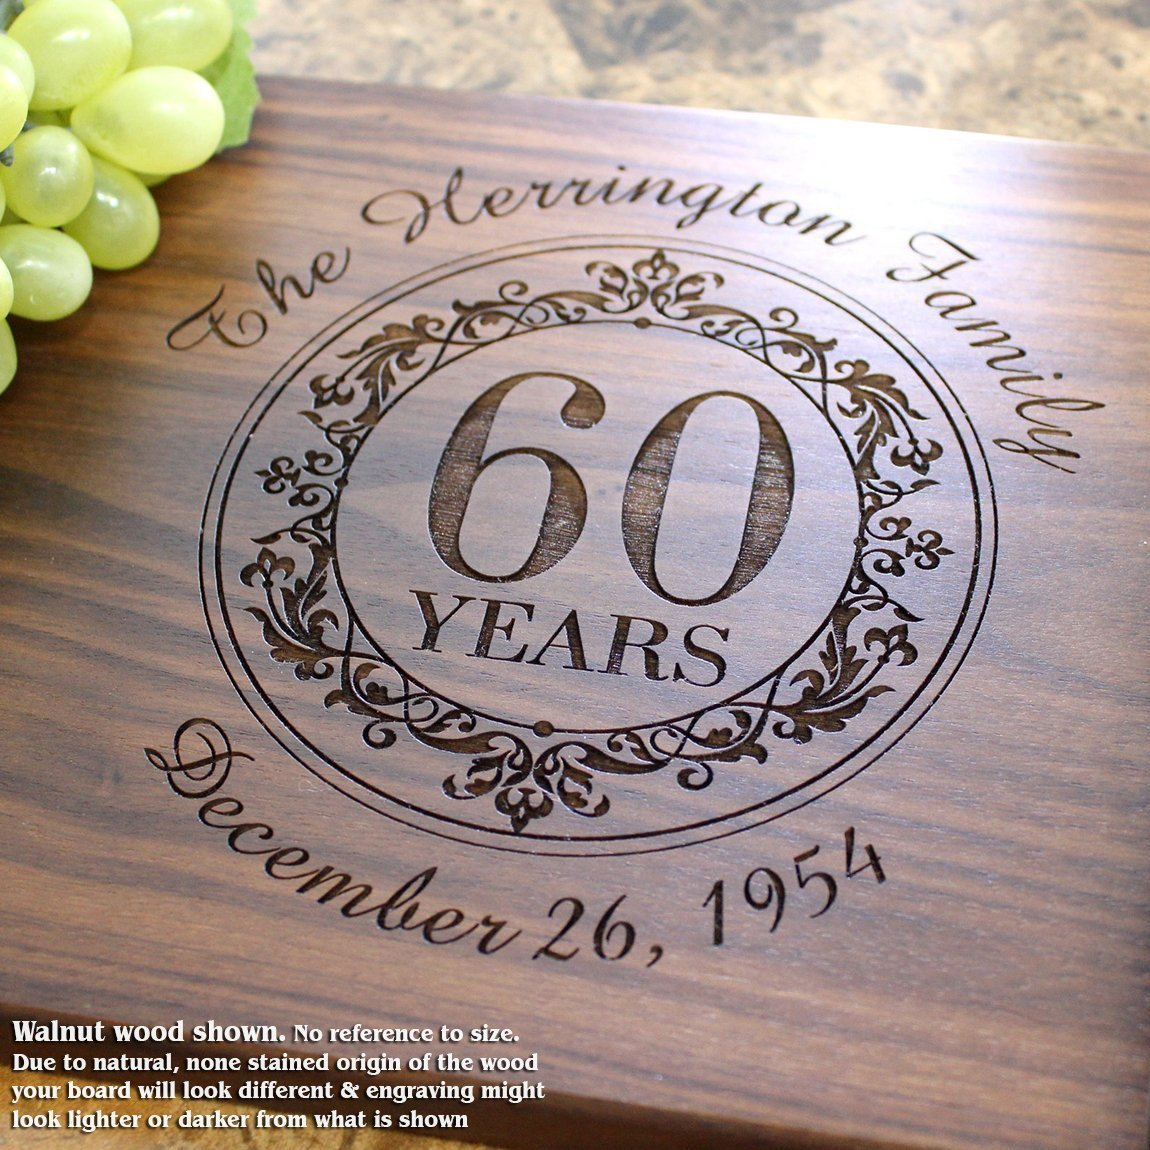 Personalized Cutting Board, Custom Keepsake, Engraved Serving Cheese Plate, Anniversary, Housewarming, Birthday, Corporate, Closing Gift #011